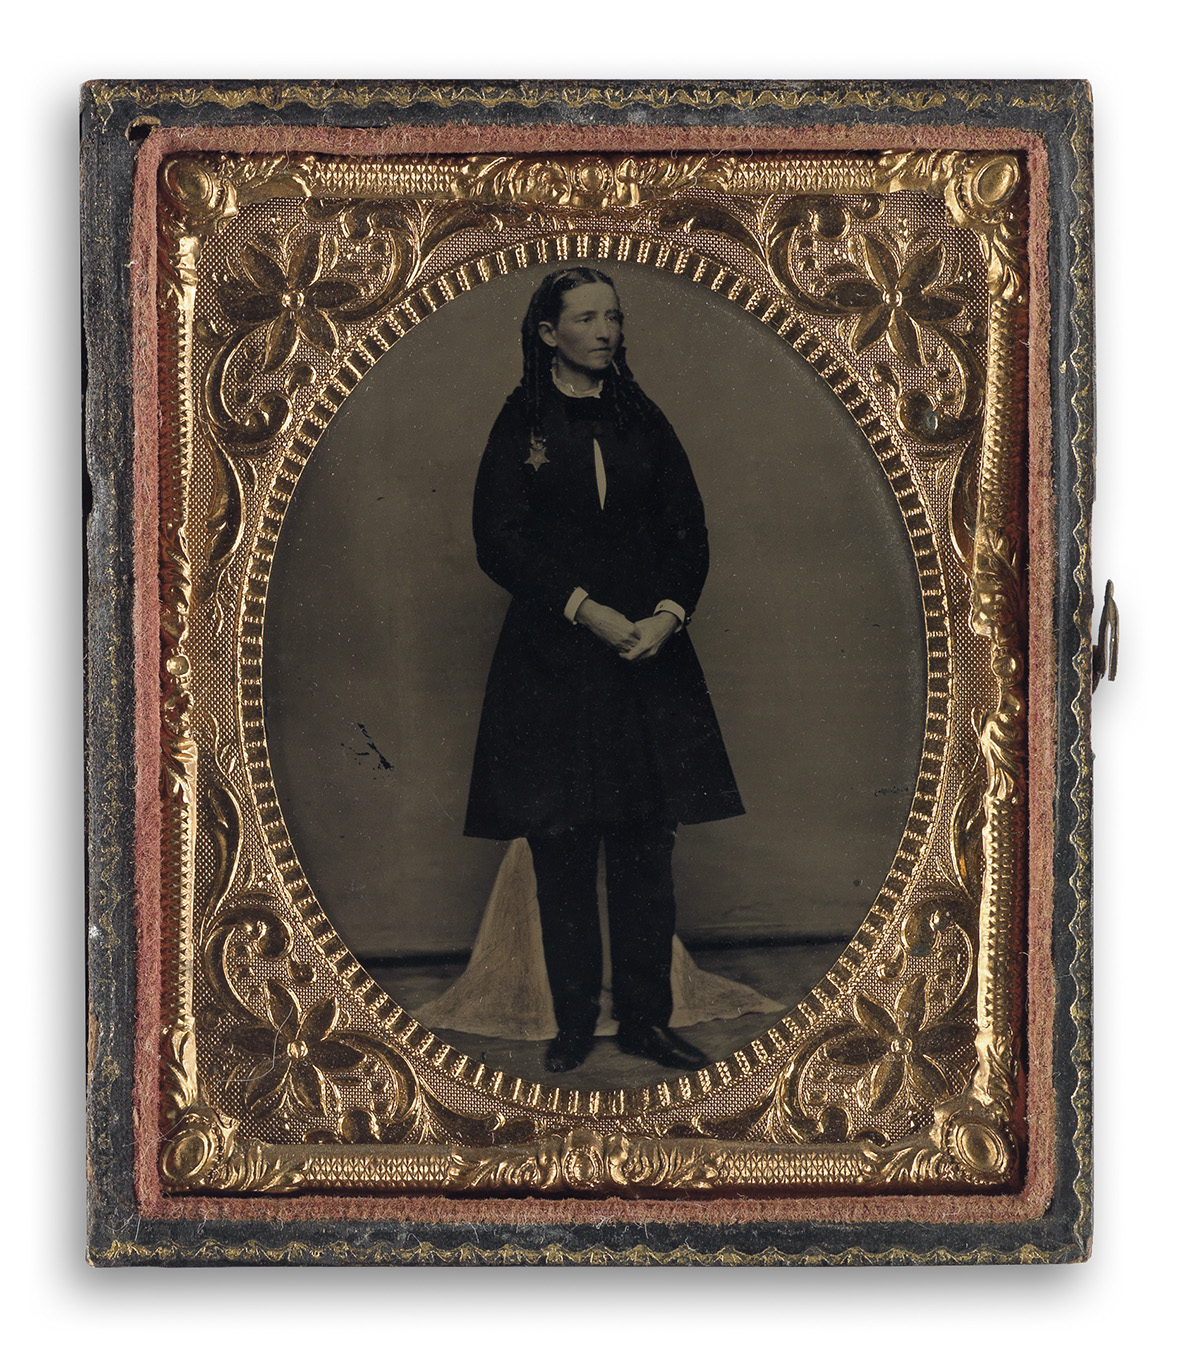 (MEDICINE--WOMENS RIGHTS--CIVIL WAR) An apparently unpublished sixth-plate tintype of the physician Mary Edwards Walker, who is wearin